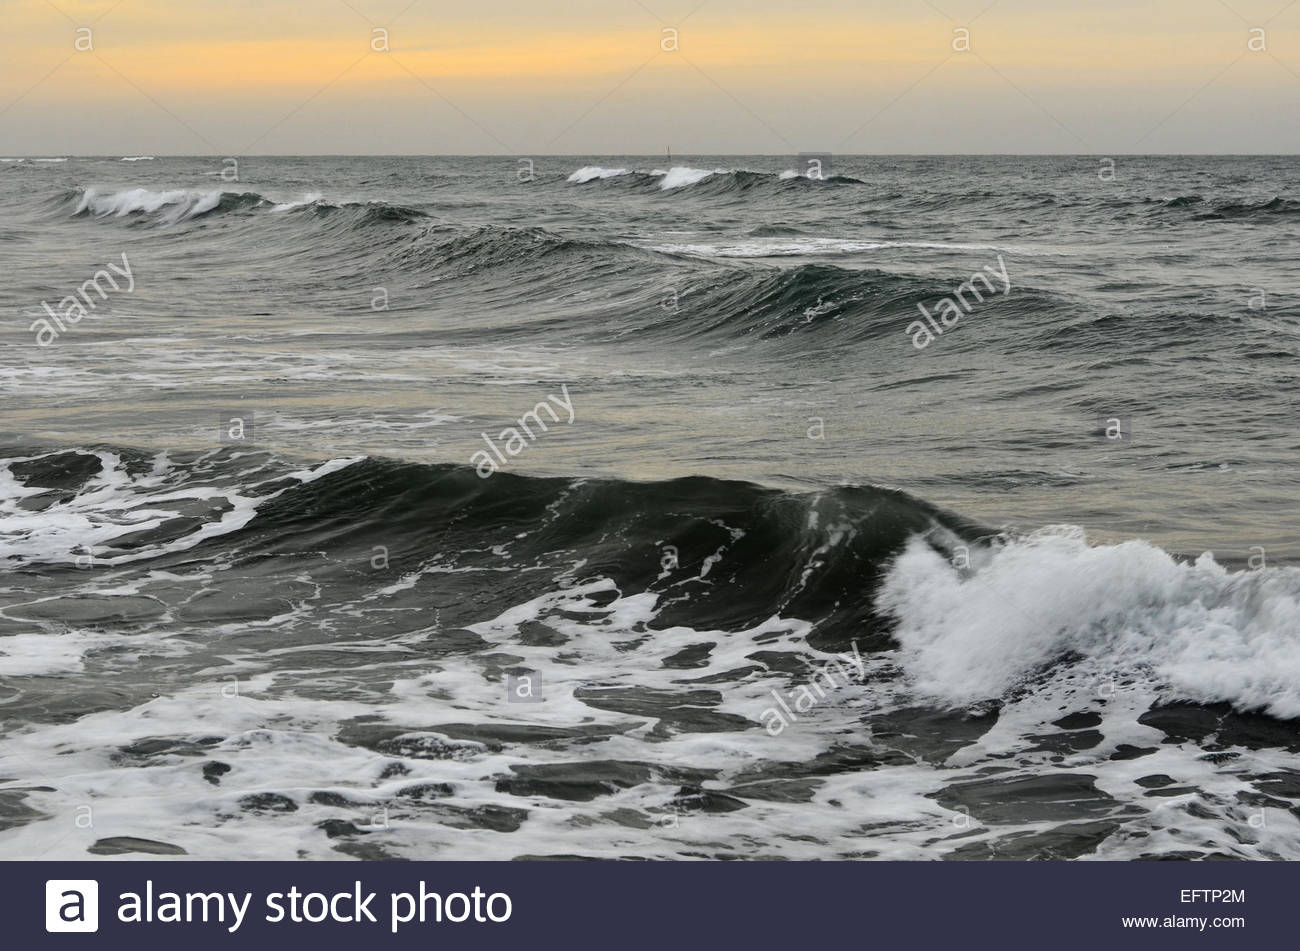 Grey waters waves windy overcast day Almeria Spain Europe - Stock Image